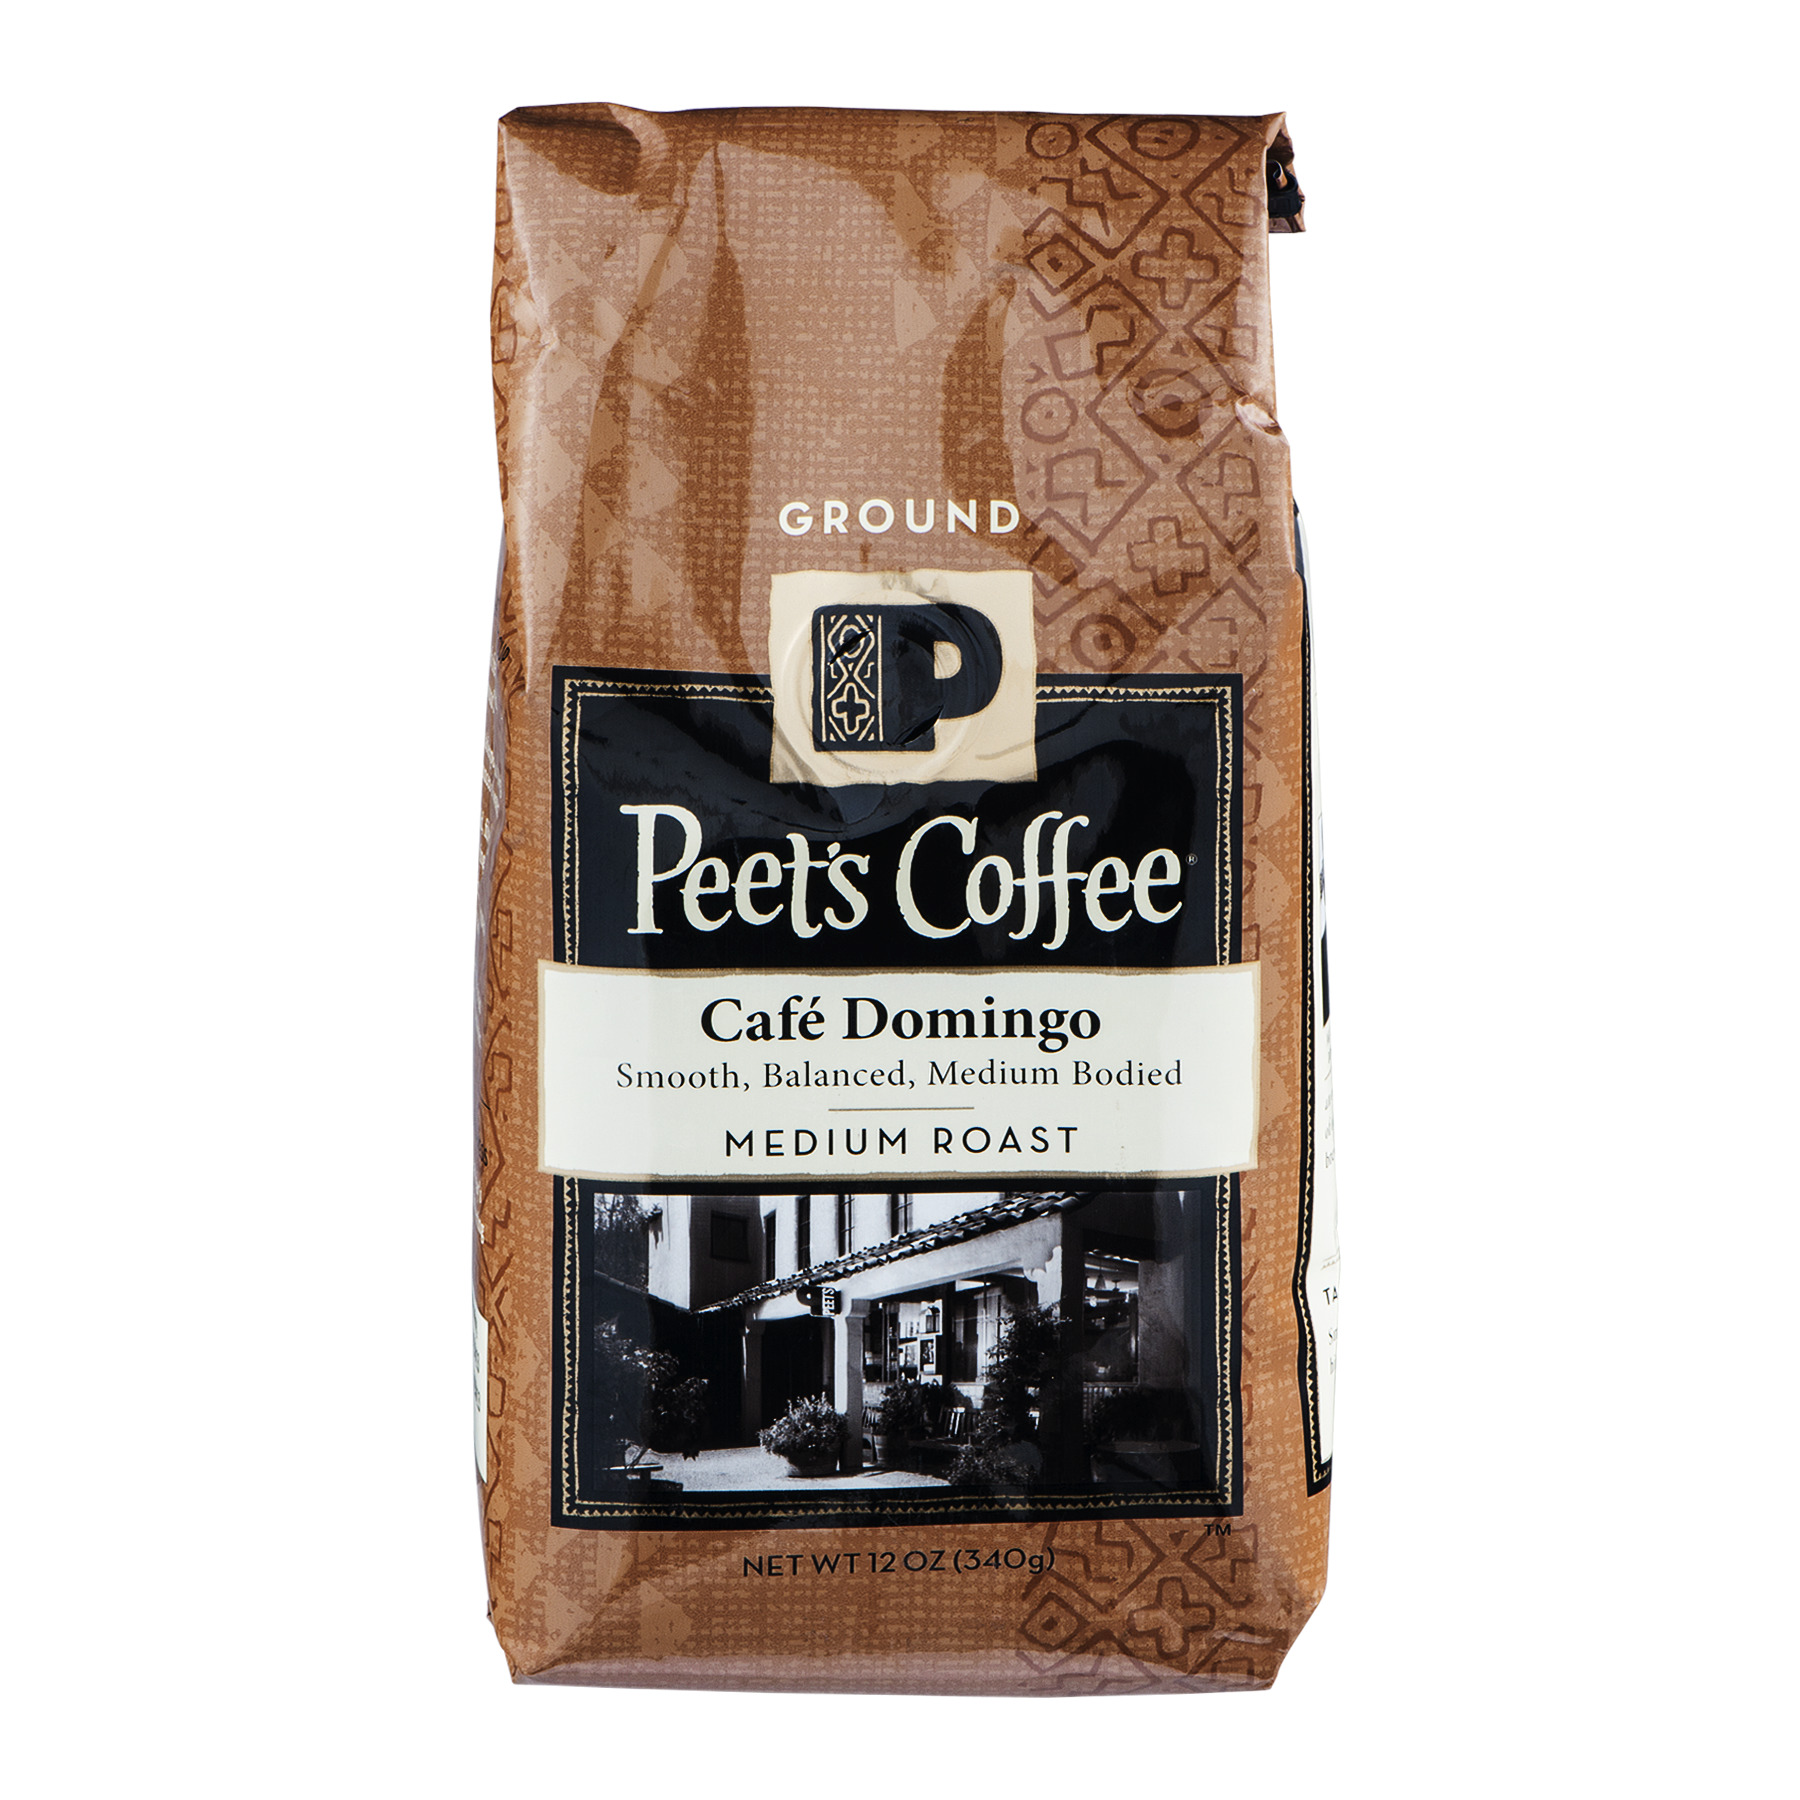 Peet's Coffee Cafe Domingo Medium Roast Ground, 12.0 OZ